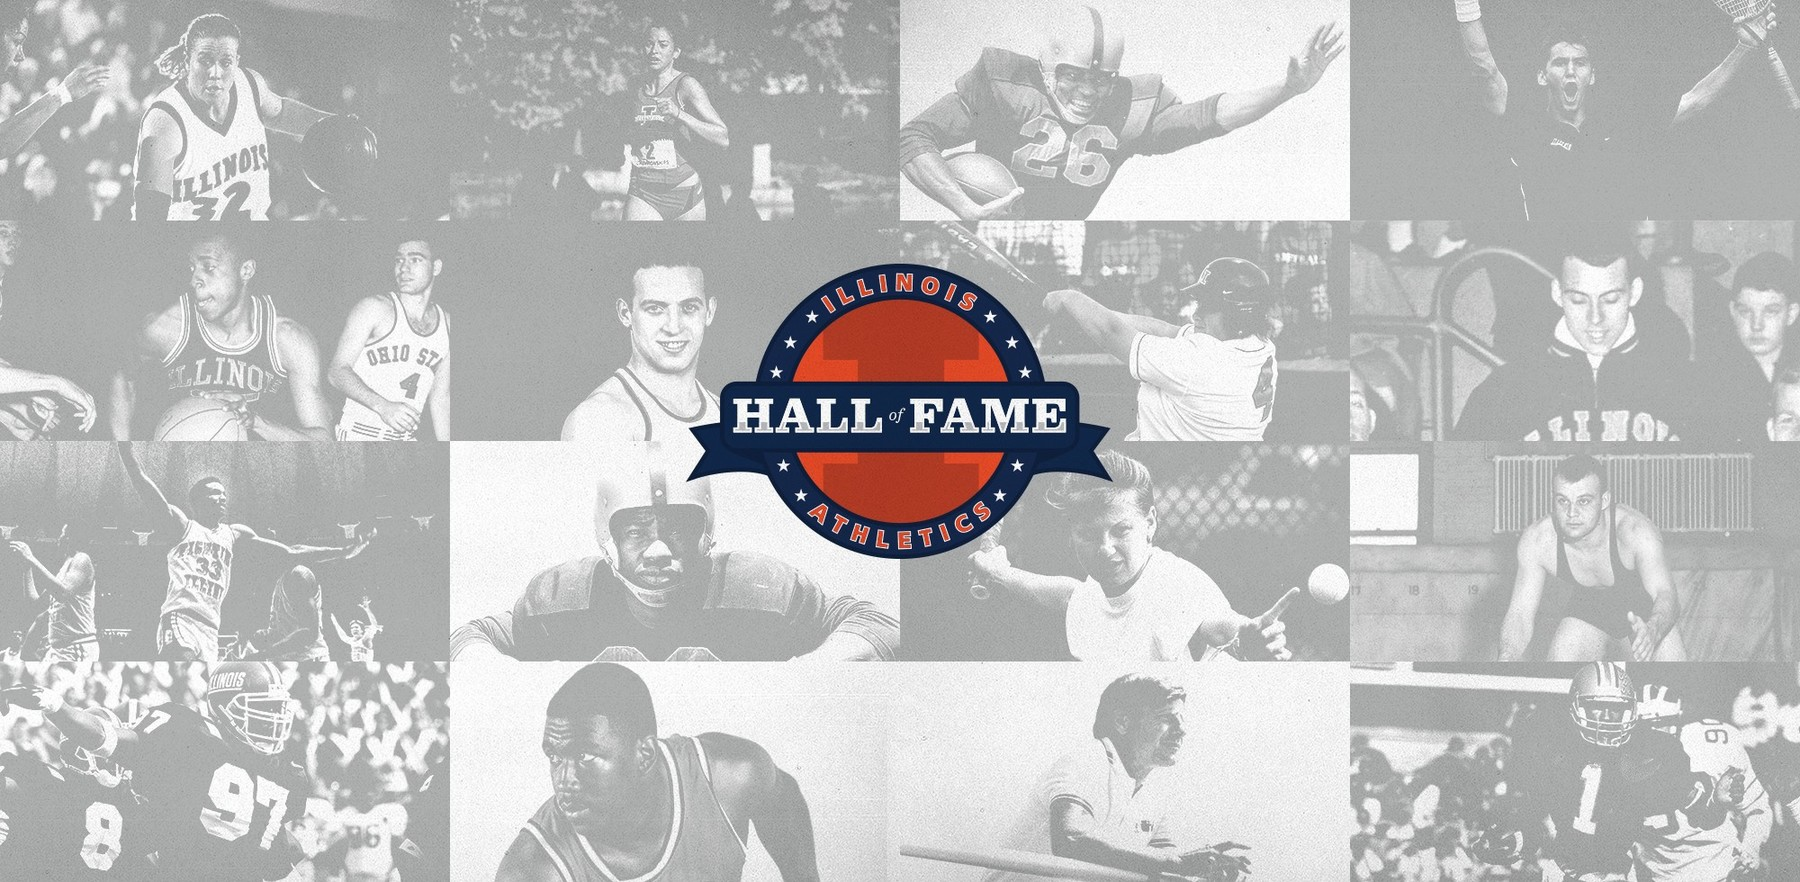 Illinois Athletics Hall of Fame logo and black and white images of athletes